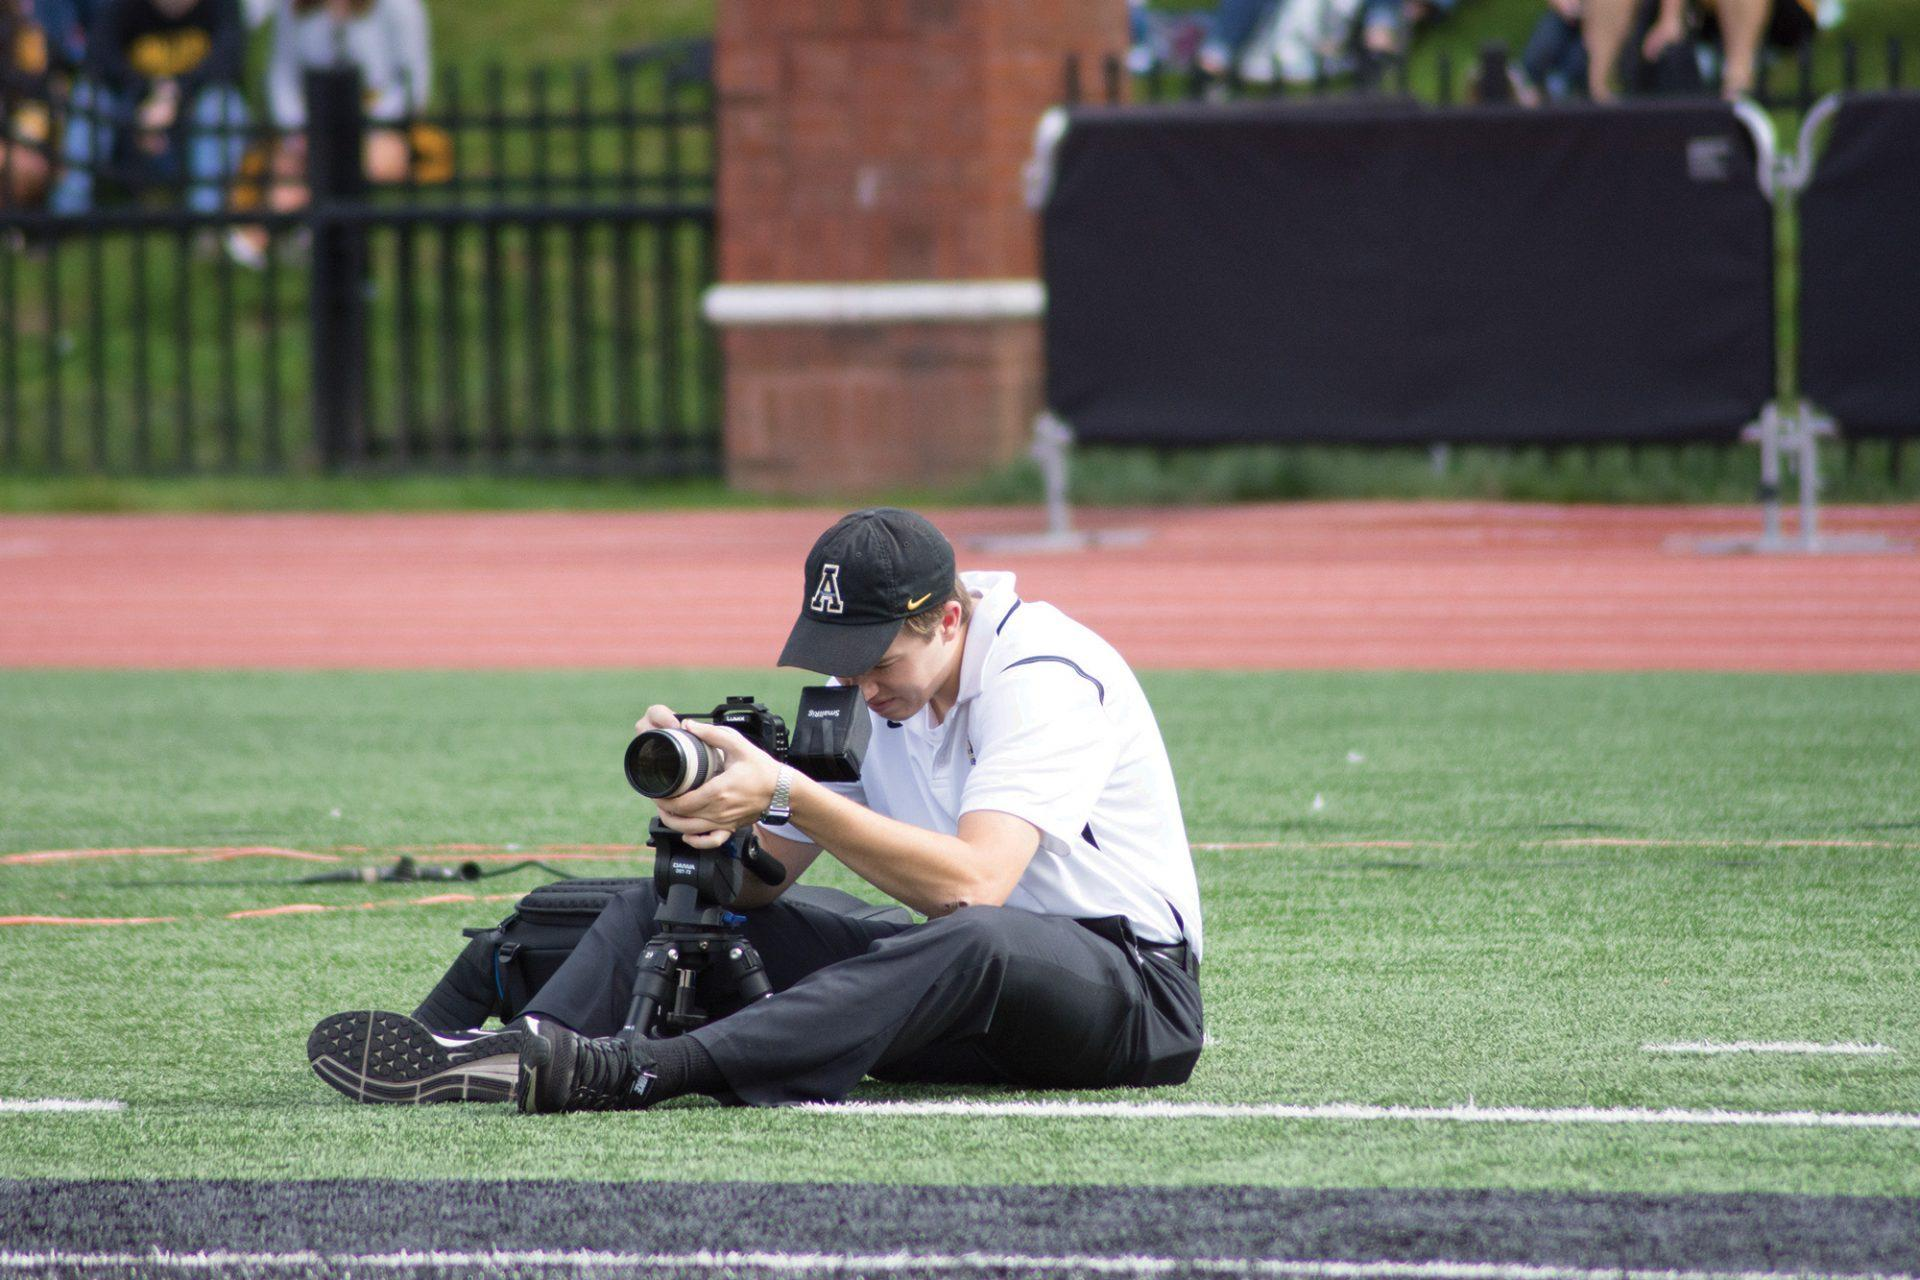 App State Football Video Team Producing Their Legacy The